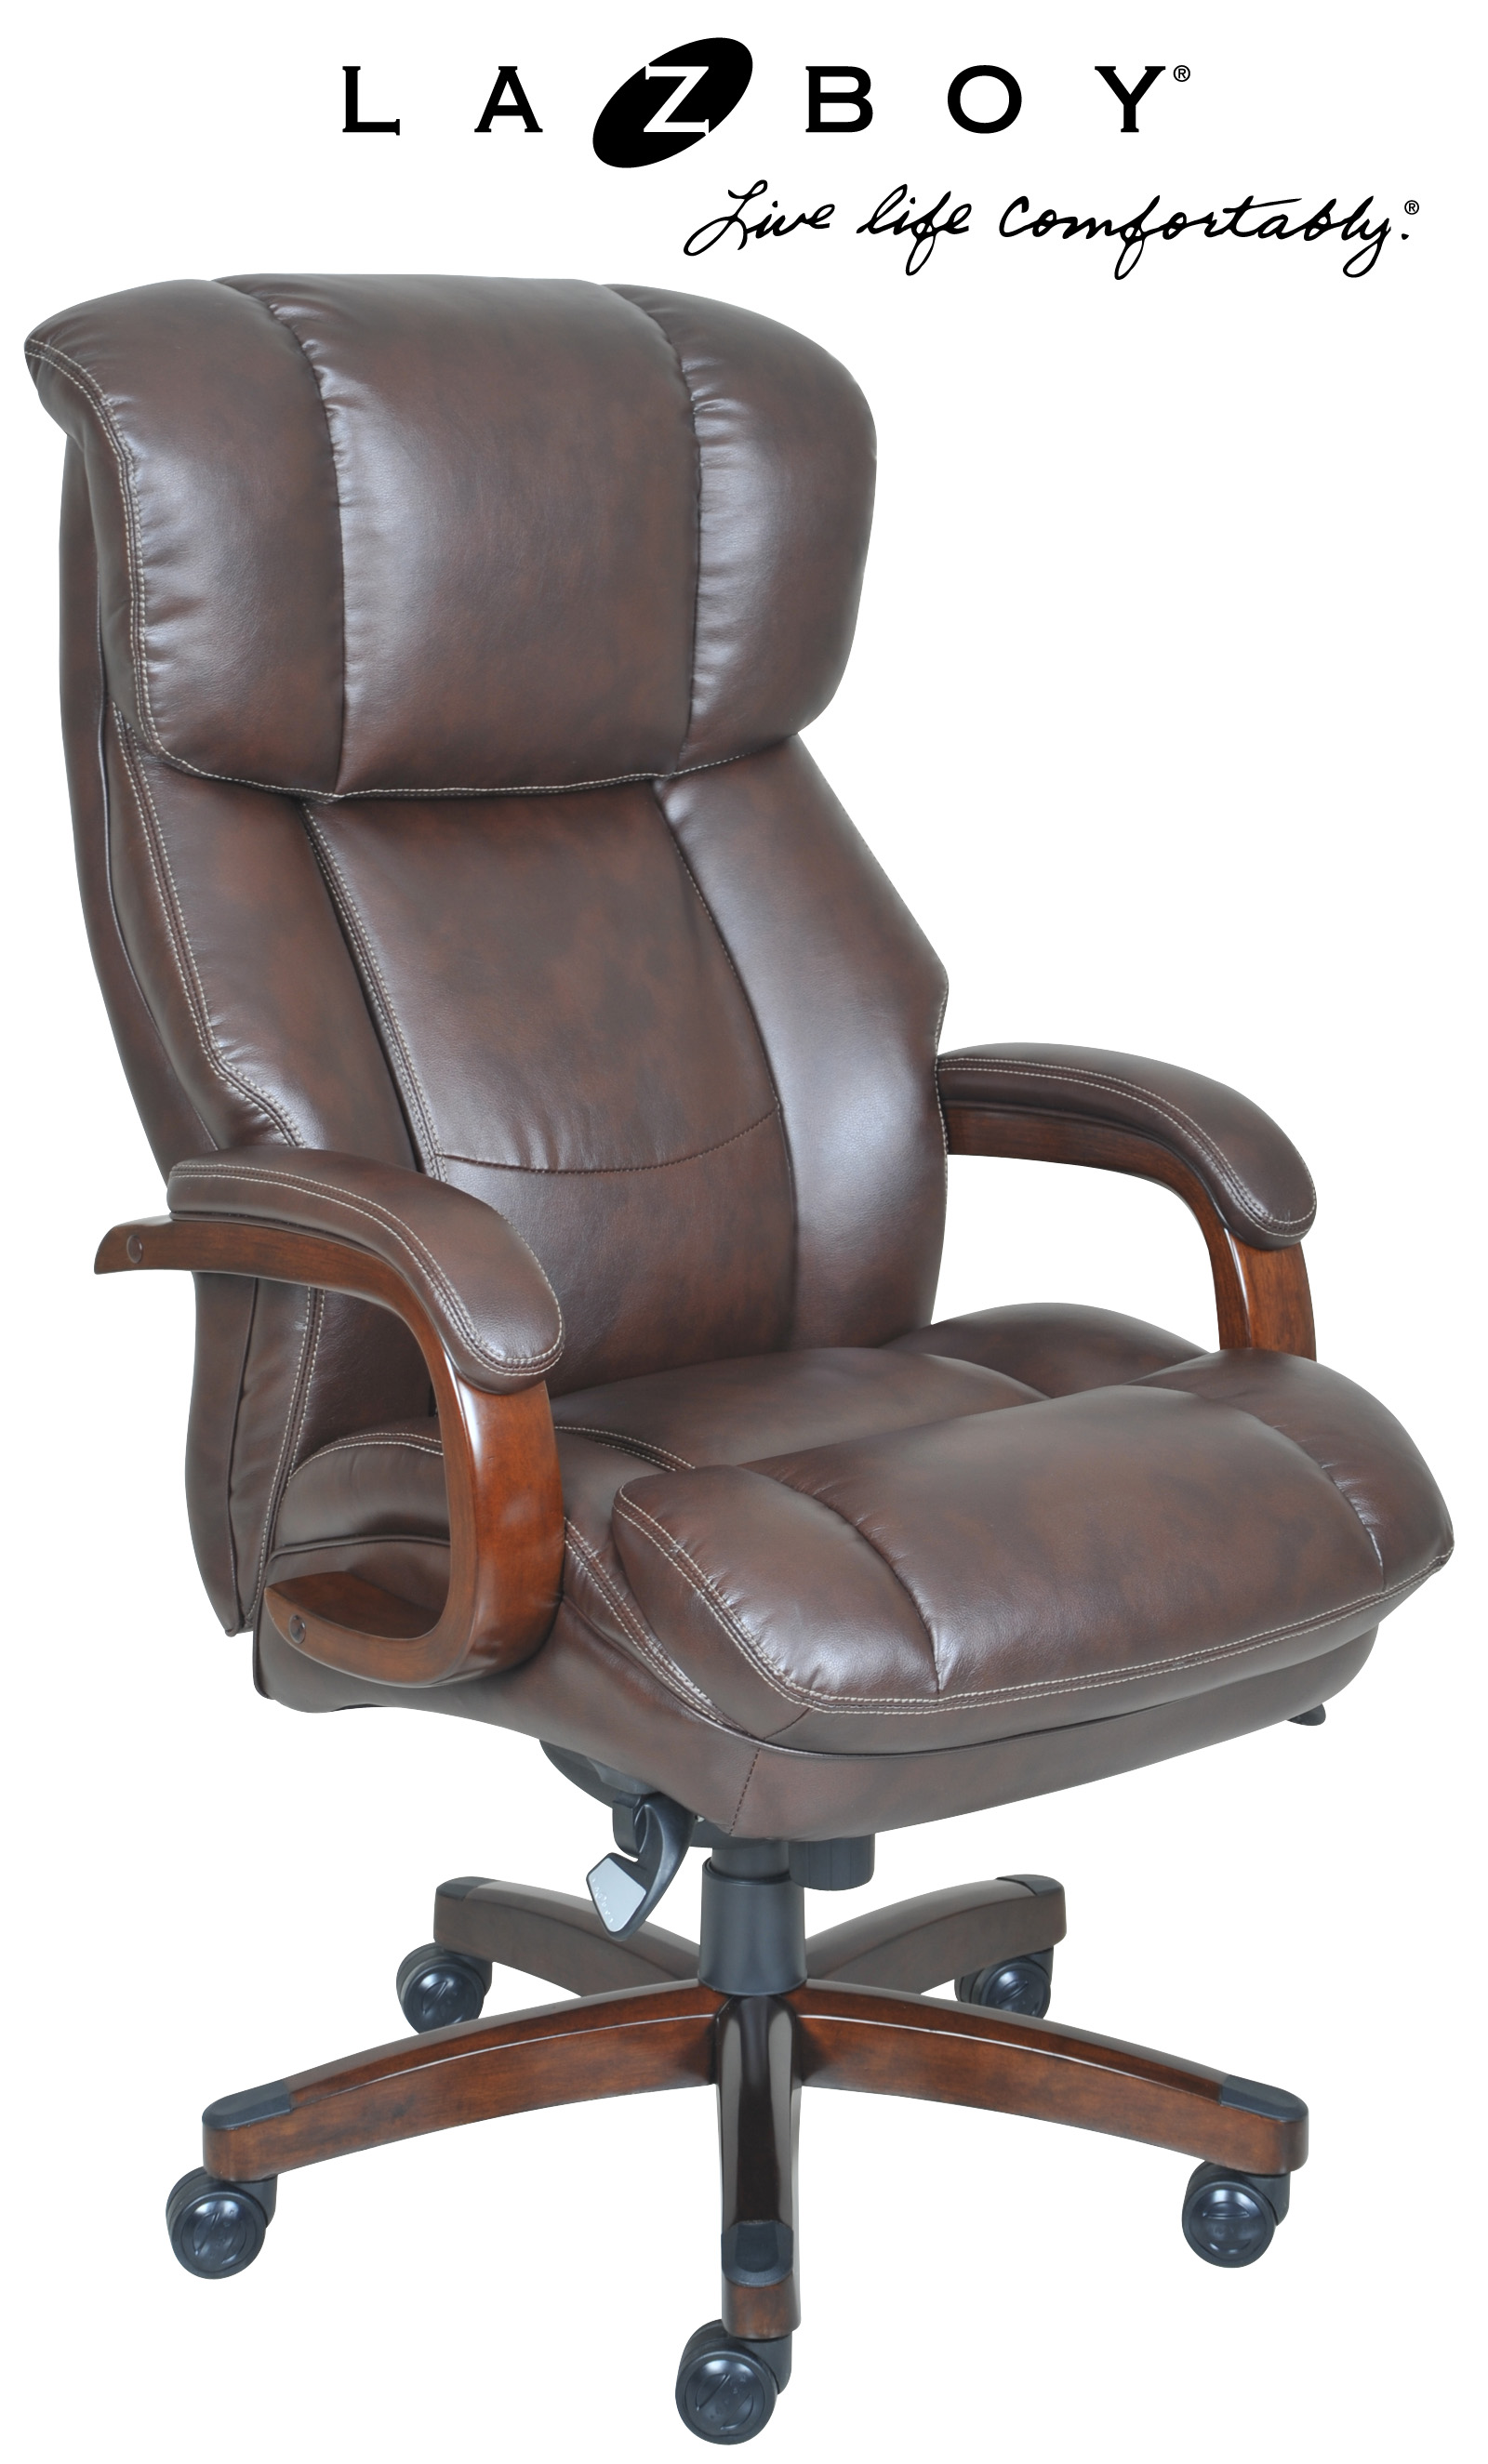 la z boy martin big and tall executive office chair brown plastic covers for moving fairmont comfort core traditions